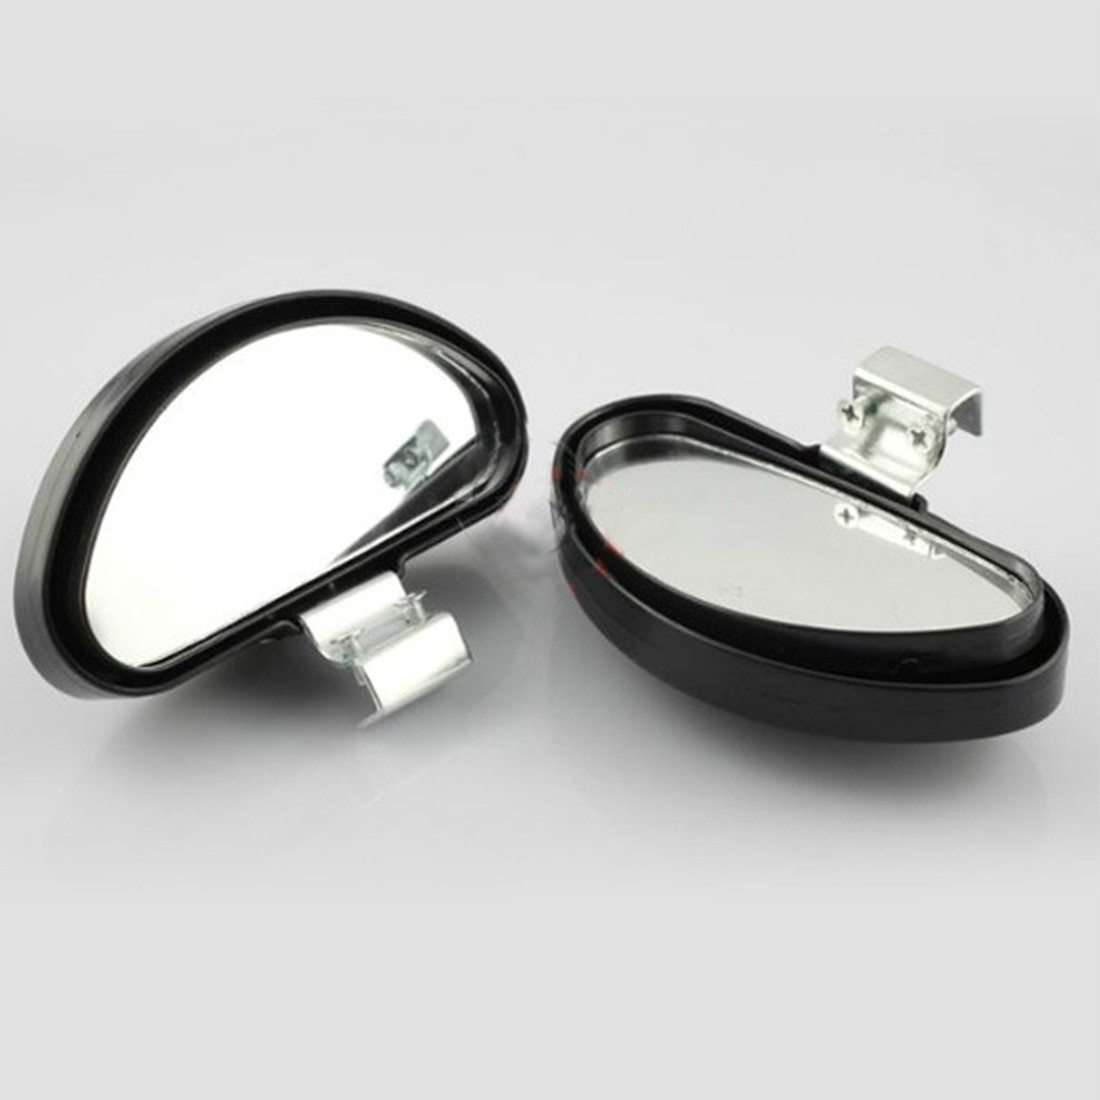 CAR REARVIEW AUXILIARY MIRROR COACH REVERSING ADJUSTABLE WIDE ANGLE VIEW BLIND SPOT BACK MIRROR